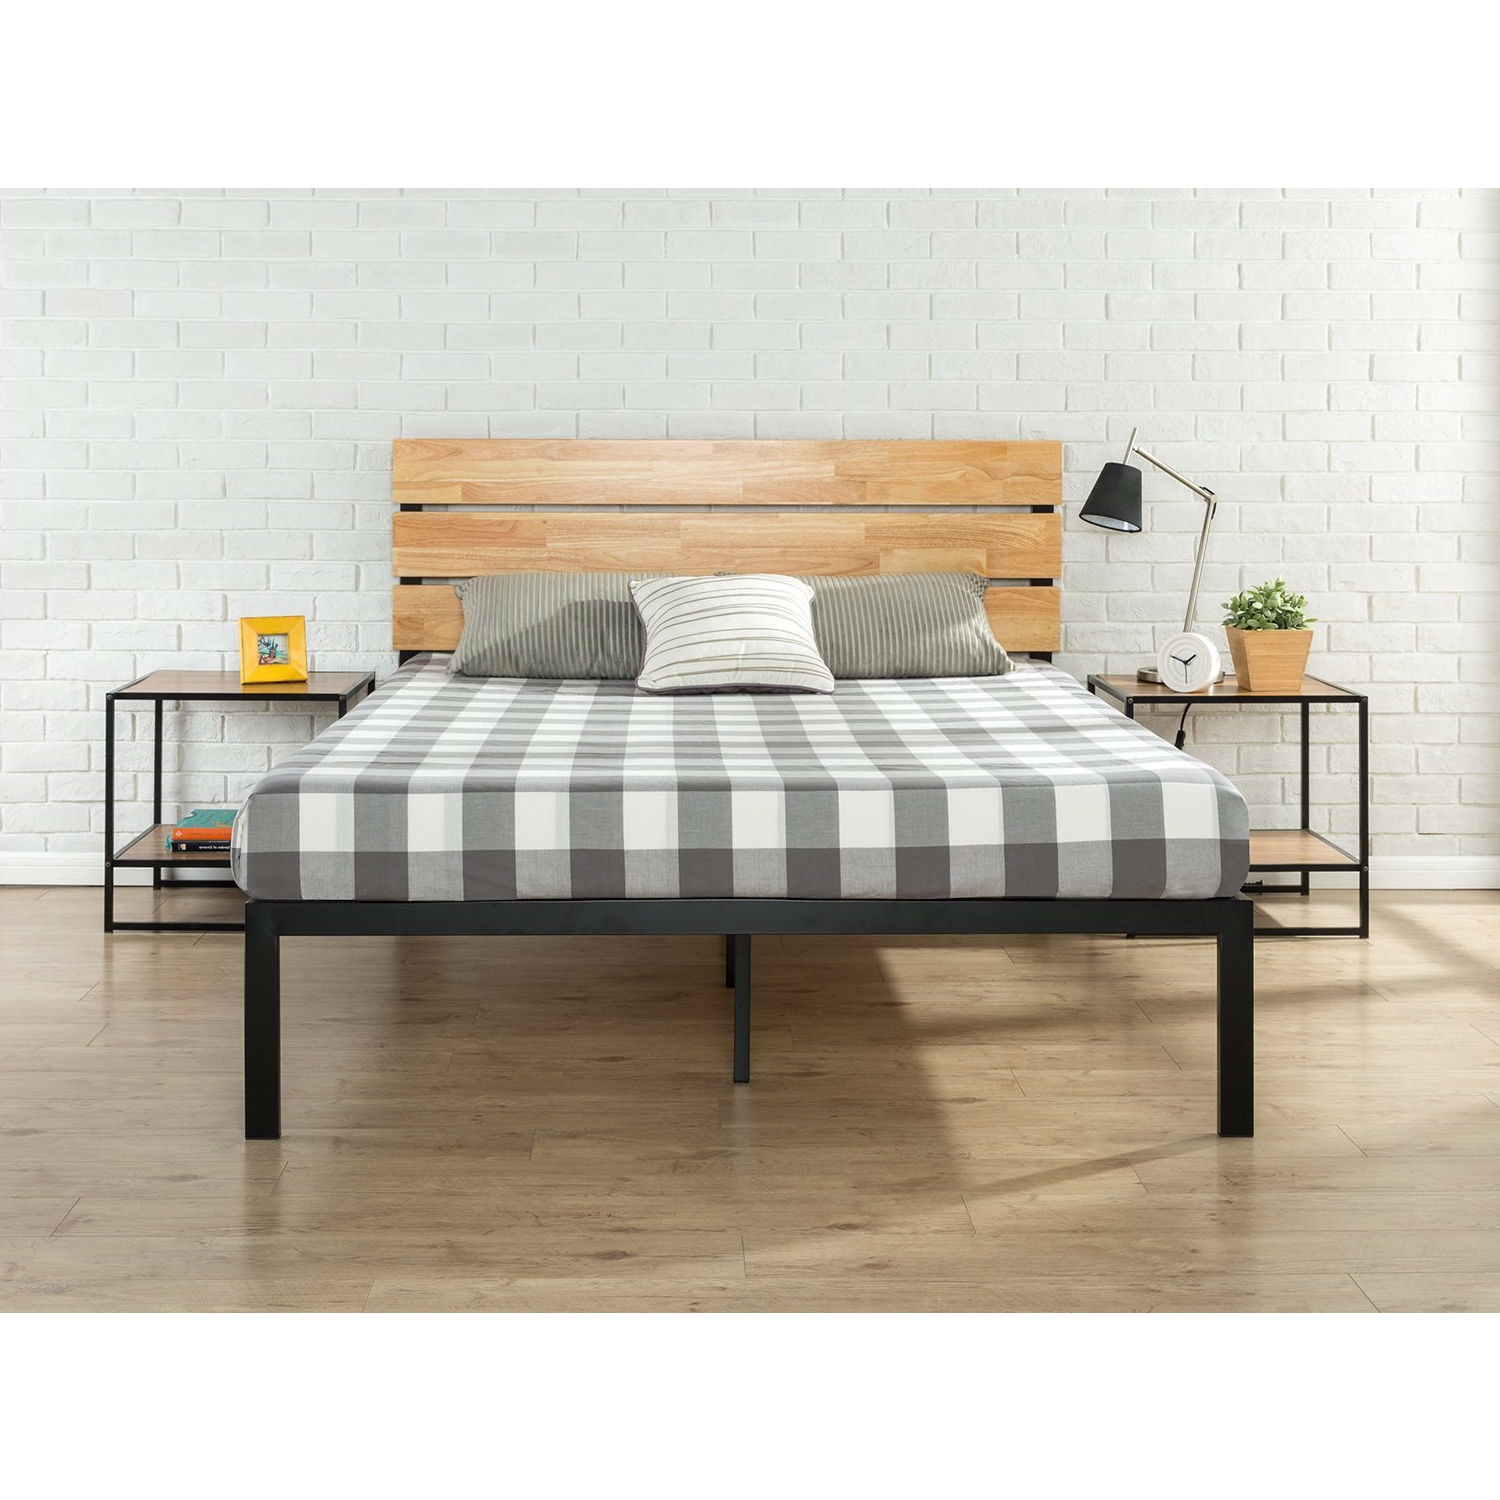 King size Modern Metal Platform Bed Frame with Wood Headboard and